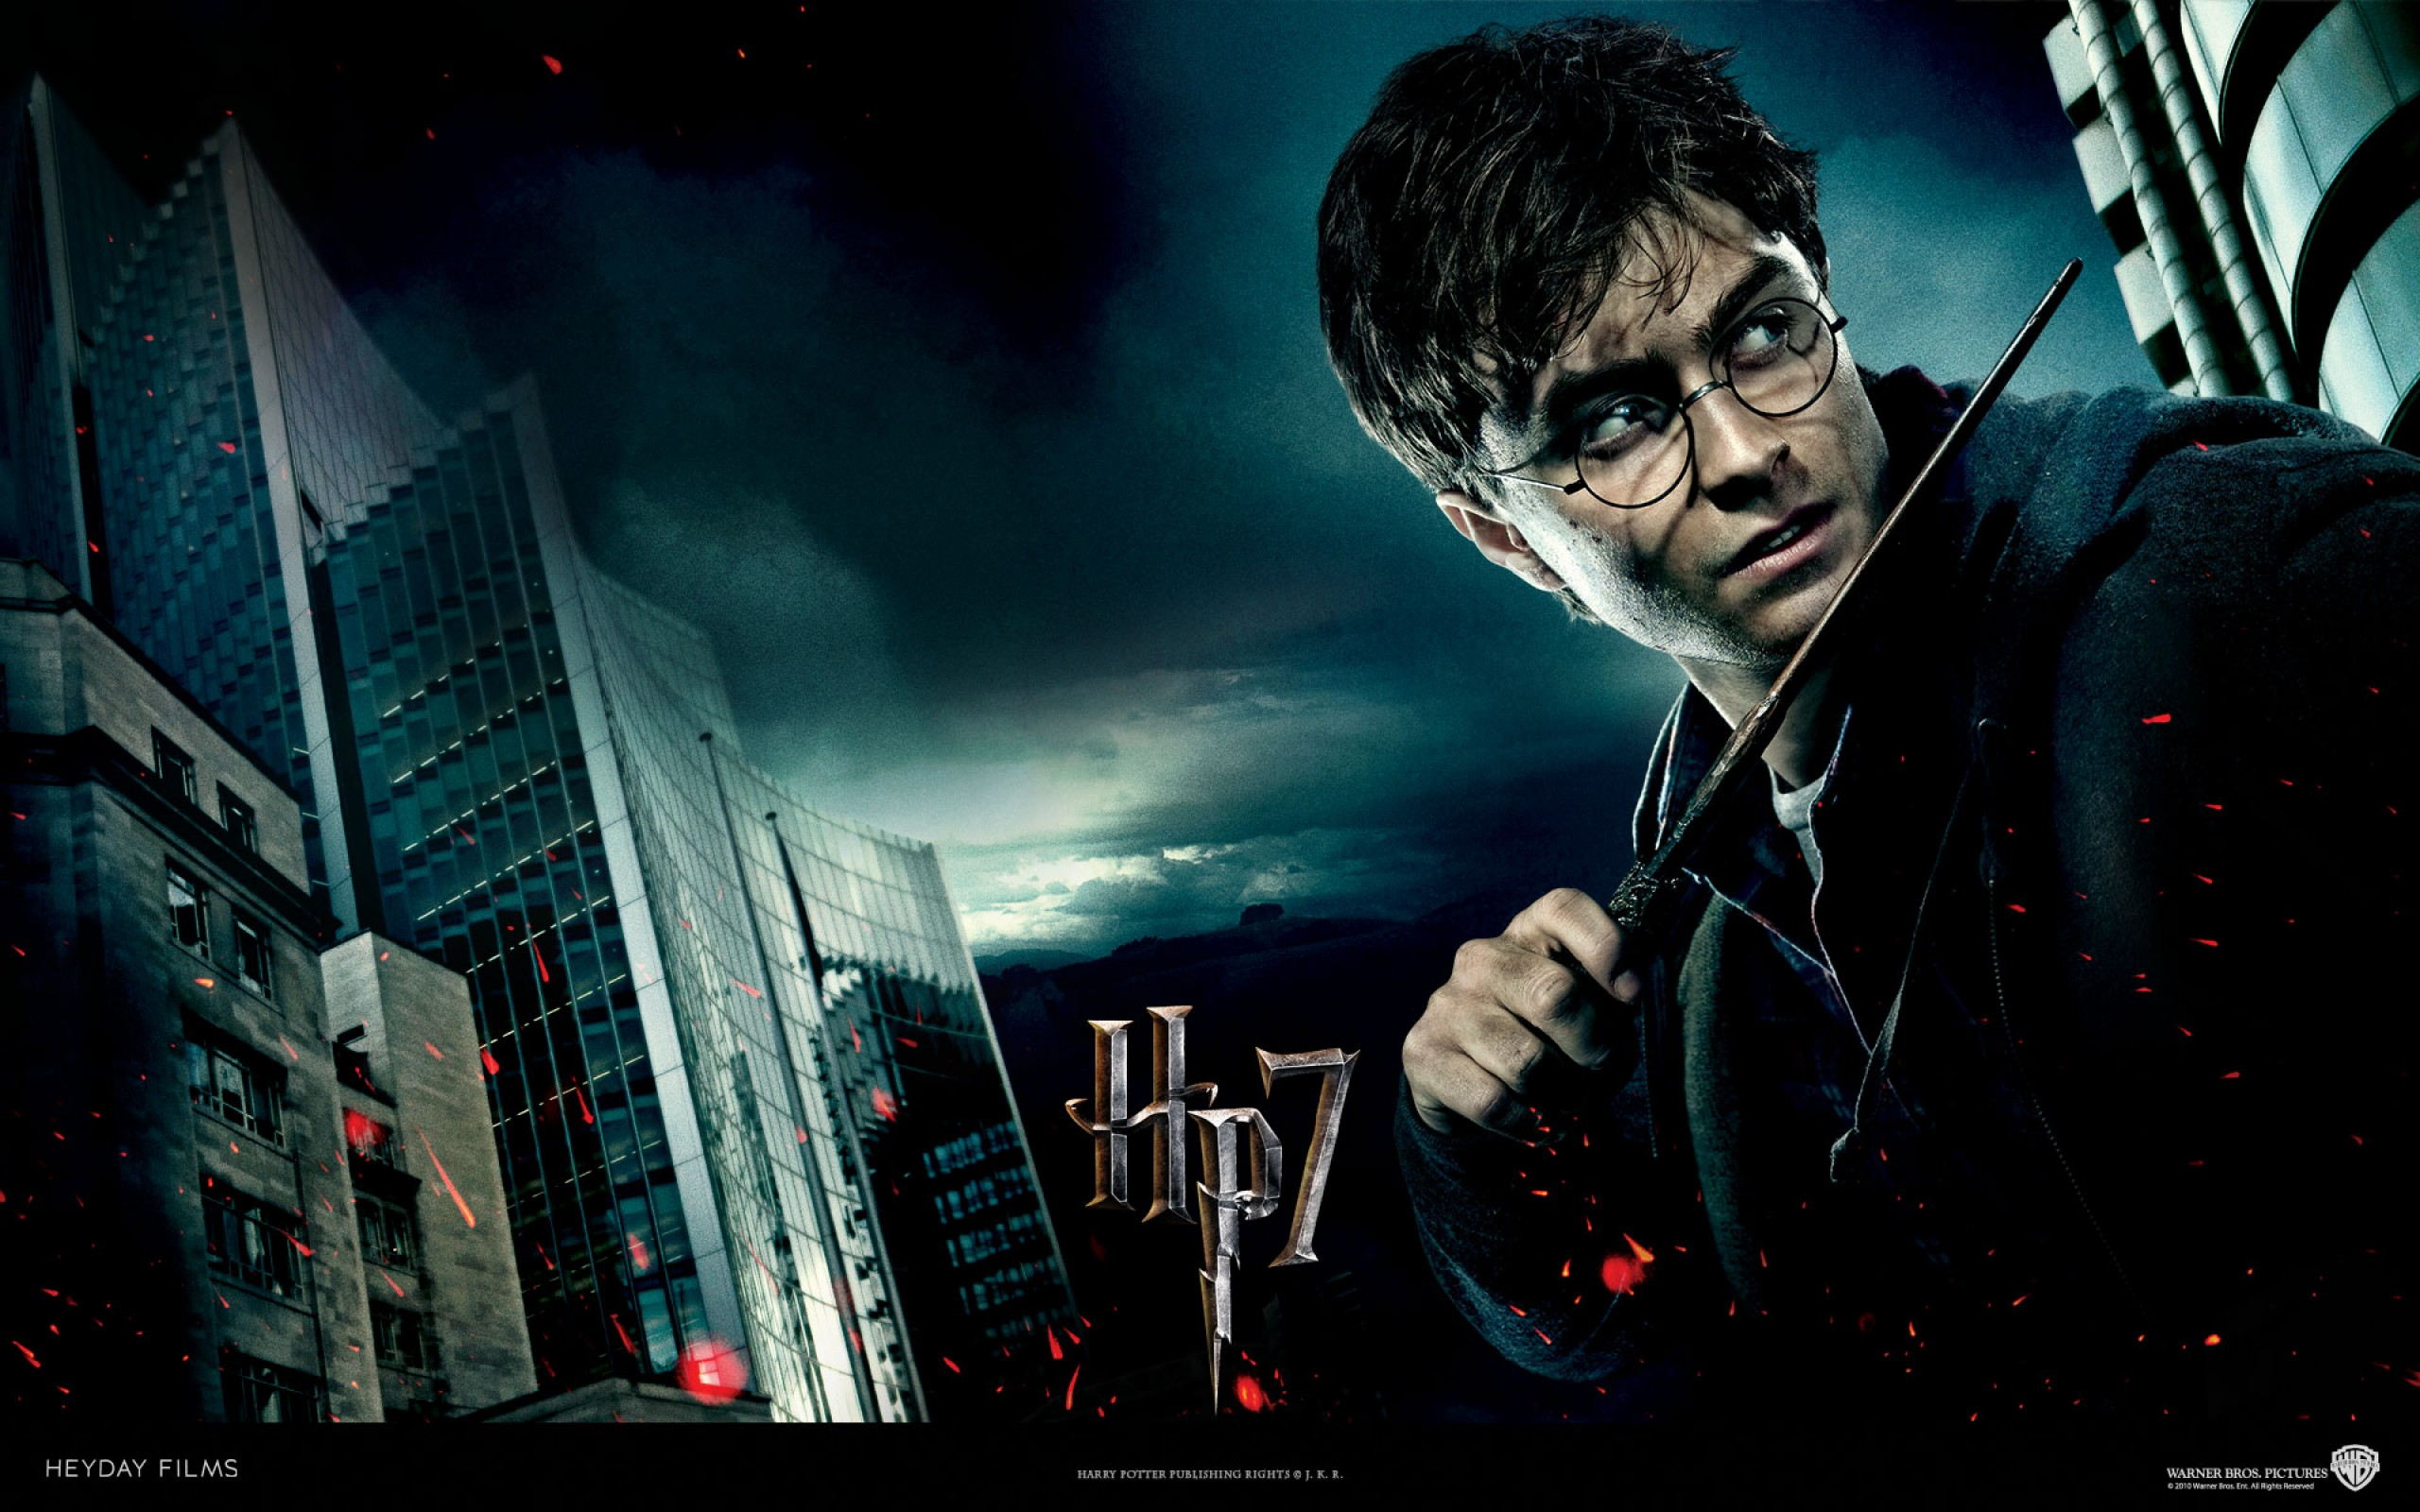 Harry Potter And Deathly Hallows Wallpaper for Desktop and Mobiles